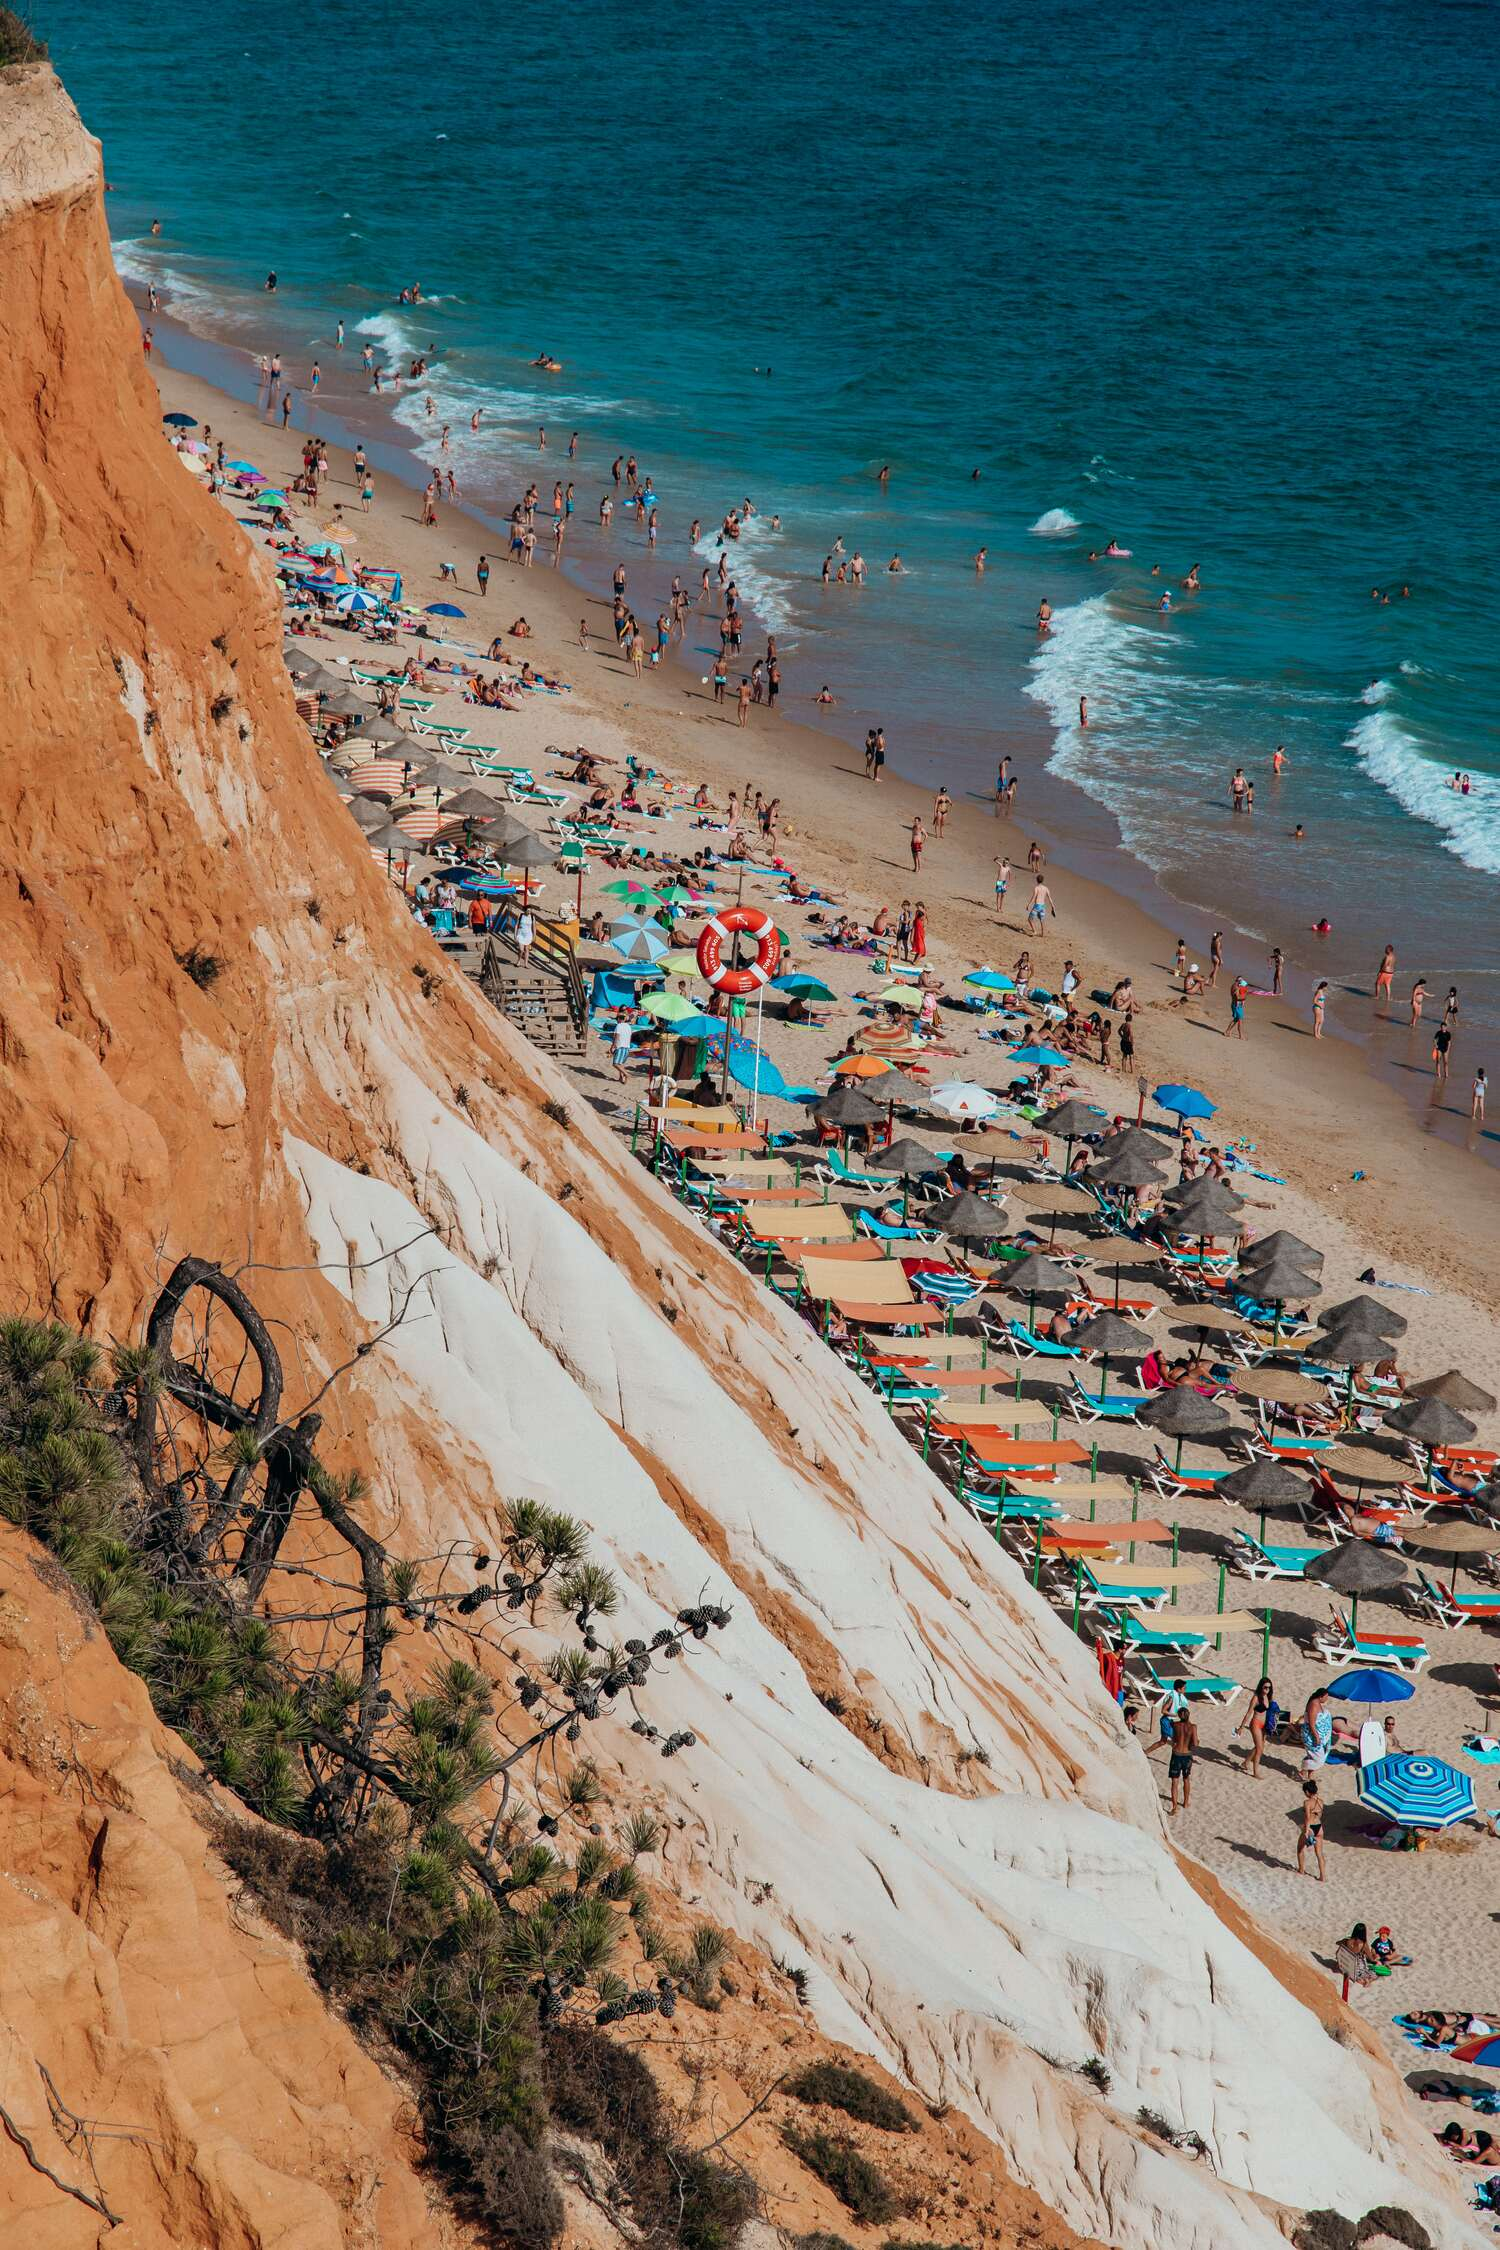 The red cliffs of Praia da Falesia is a must visit location when venturing on a Portugal road trip of the coast